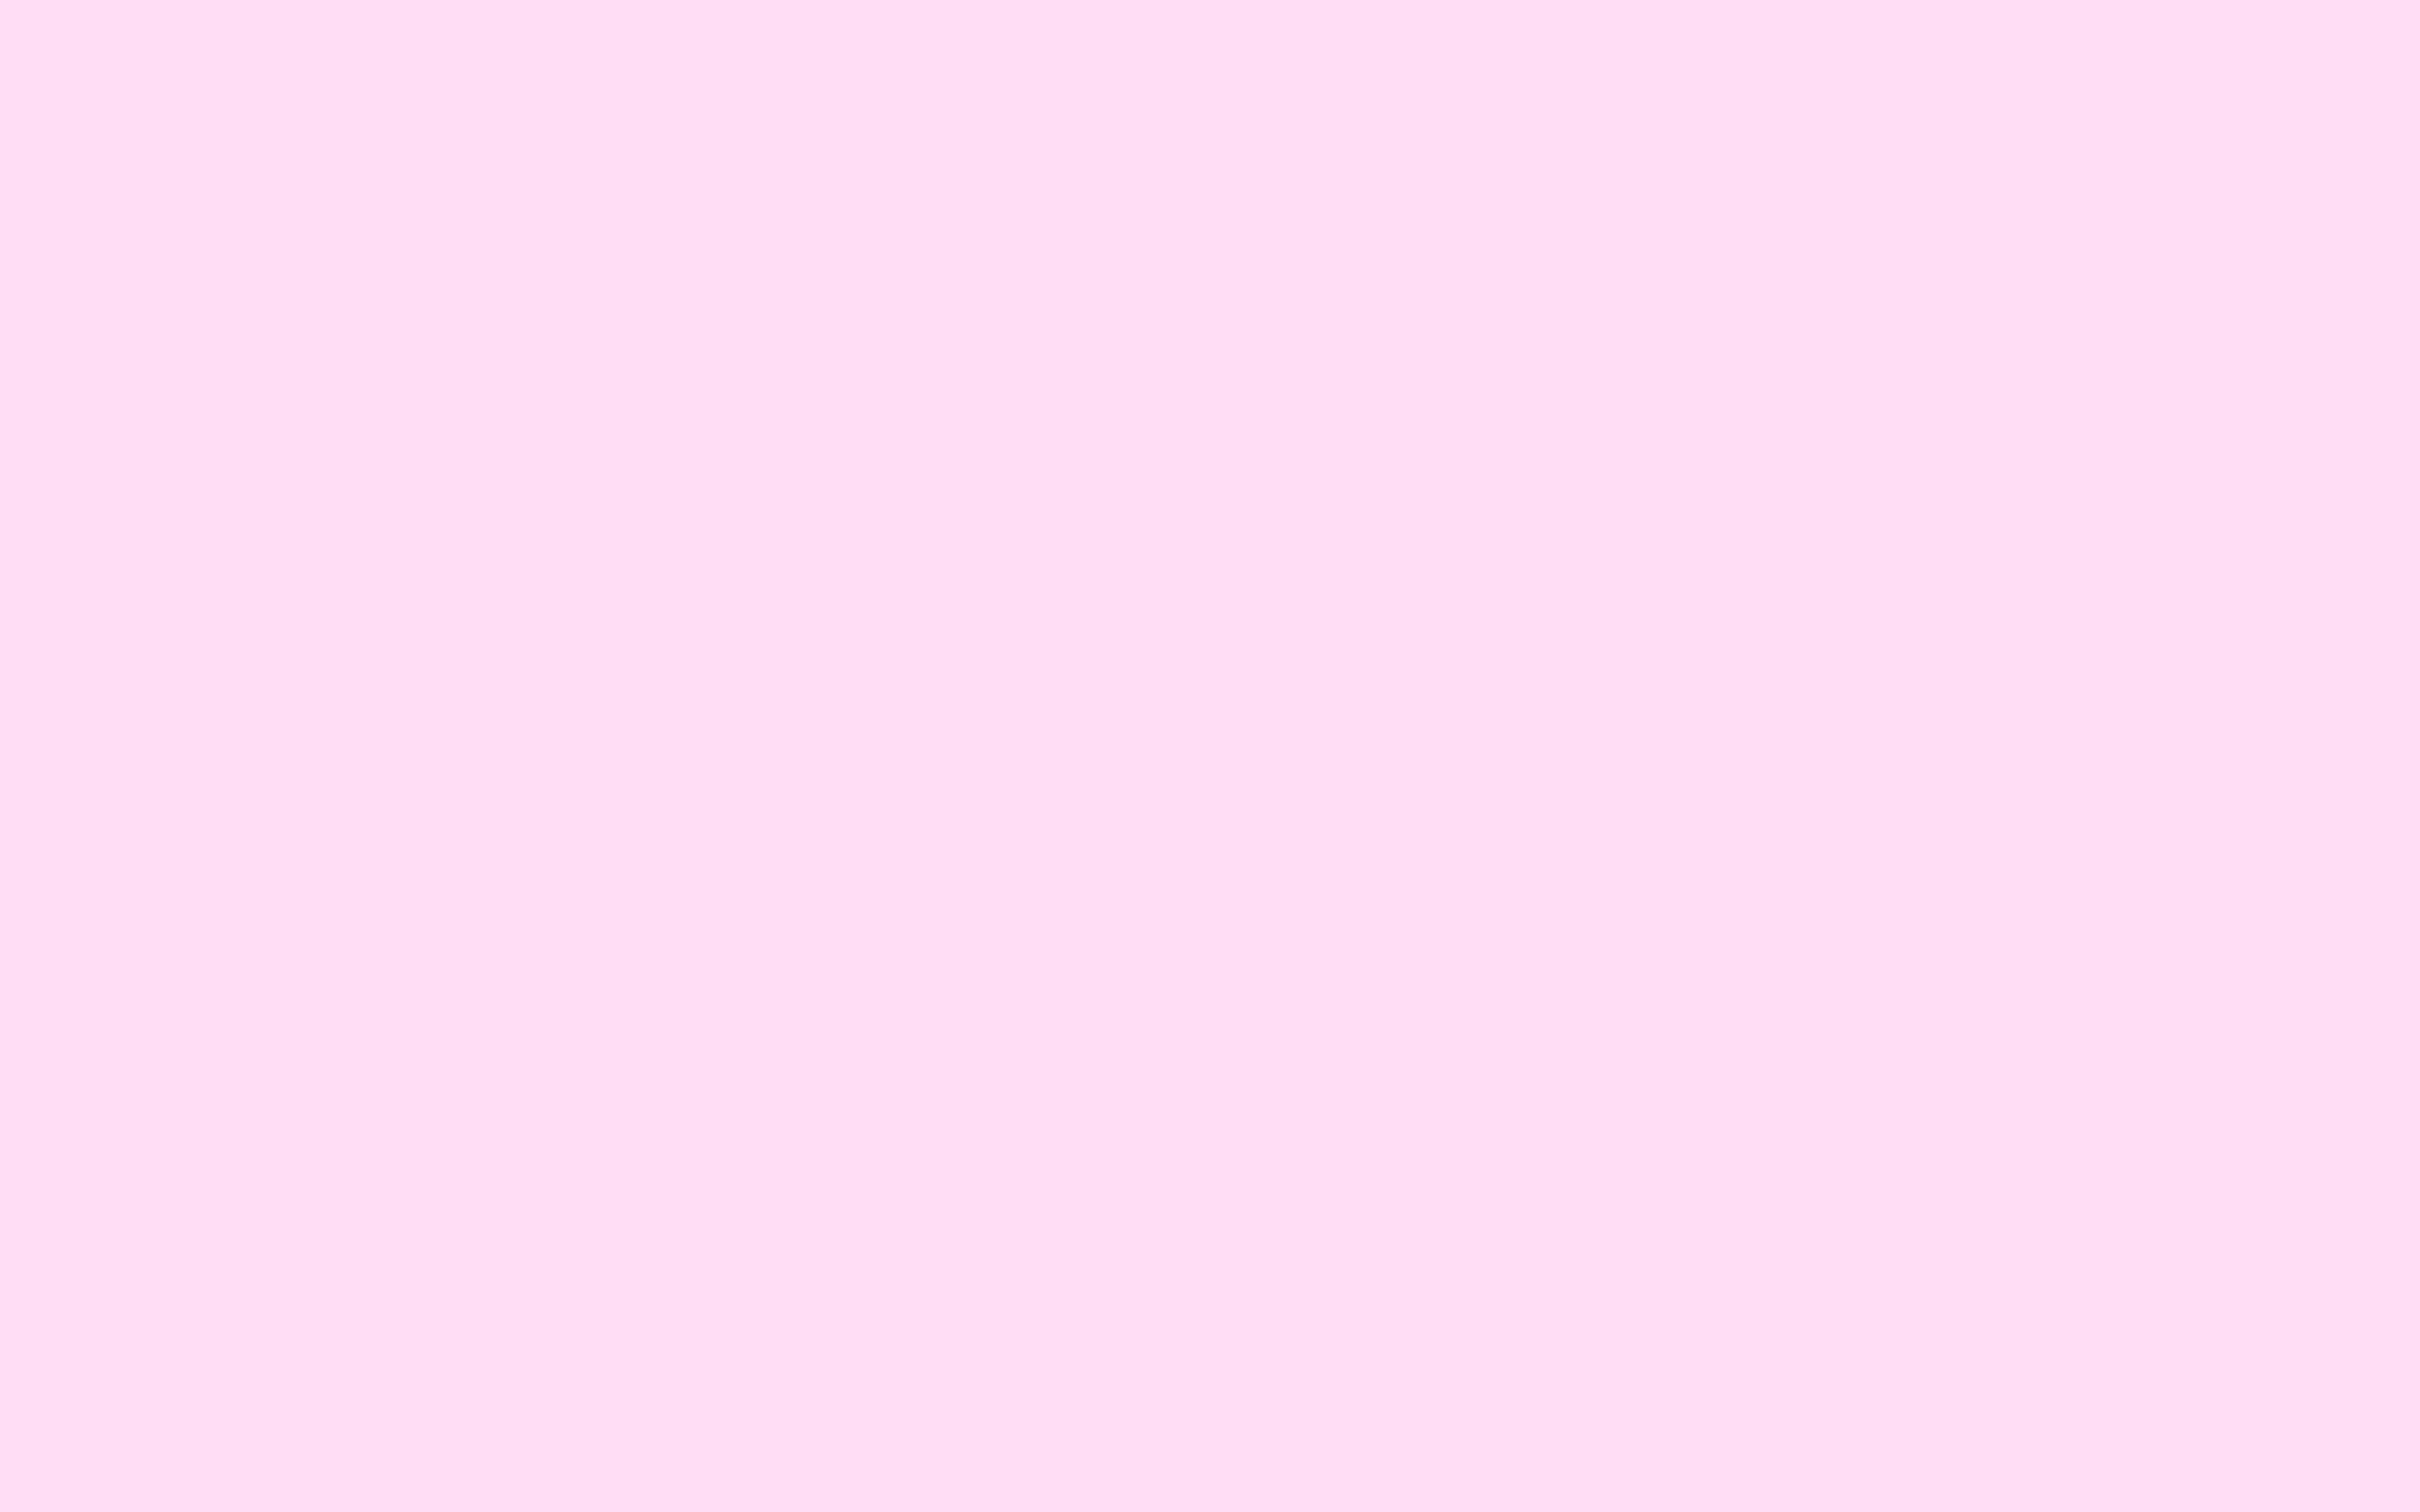 2880x1800 Pink Lace Solid Color Background